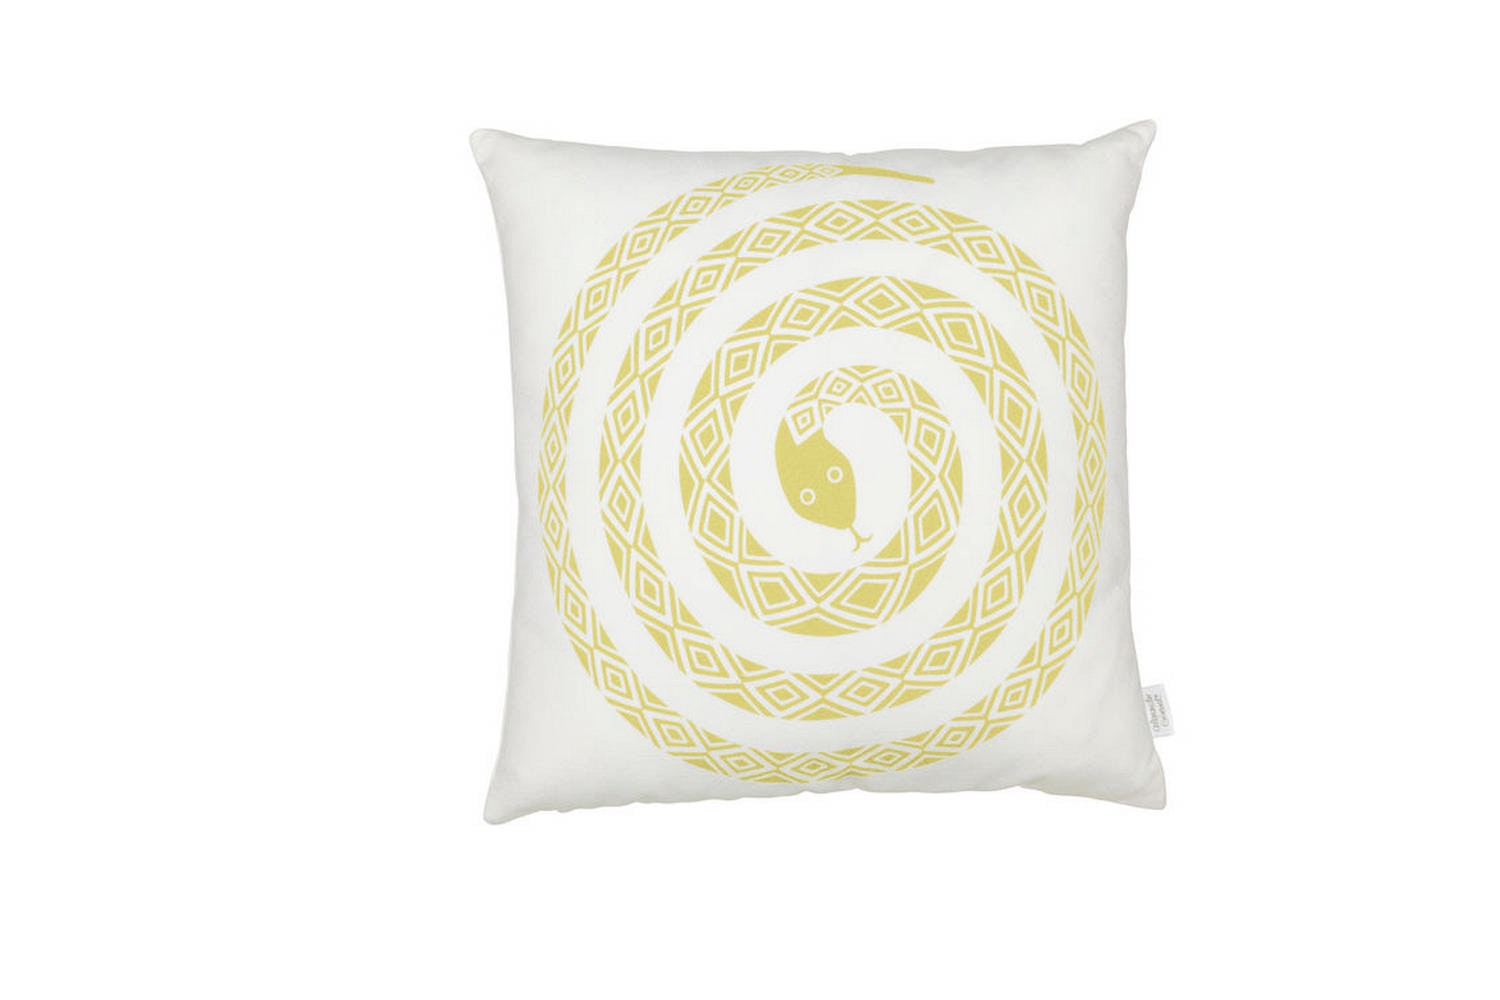 Graphic Print Pillows Square by Alexander Girard for Vitra